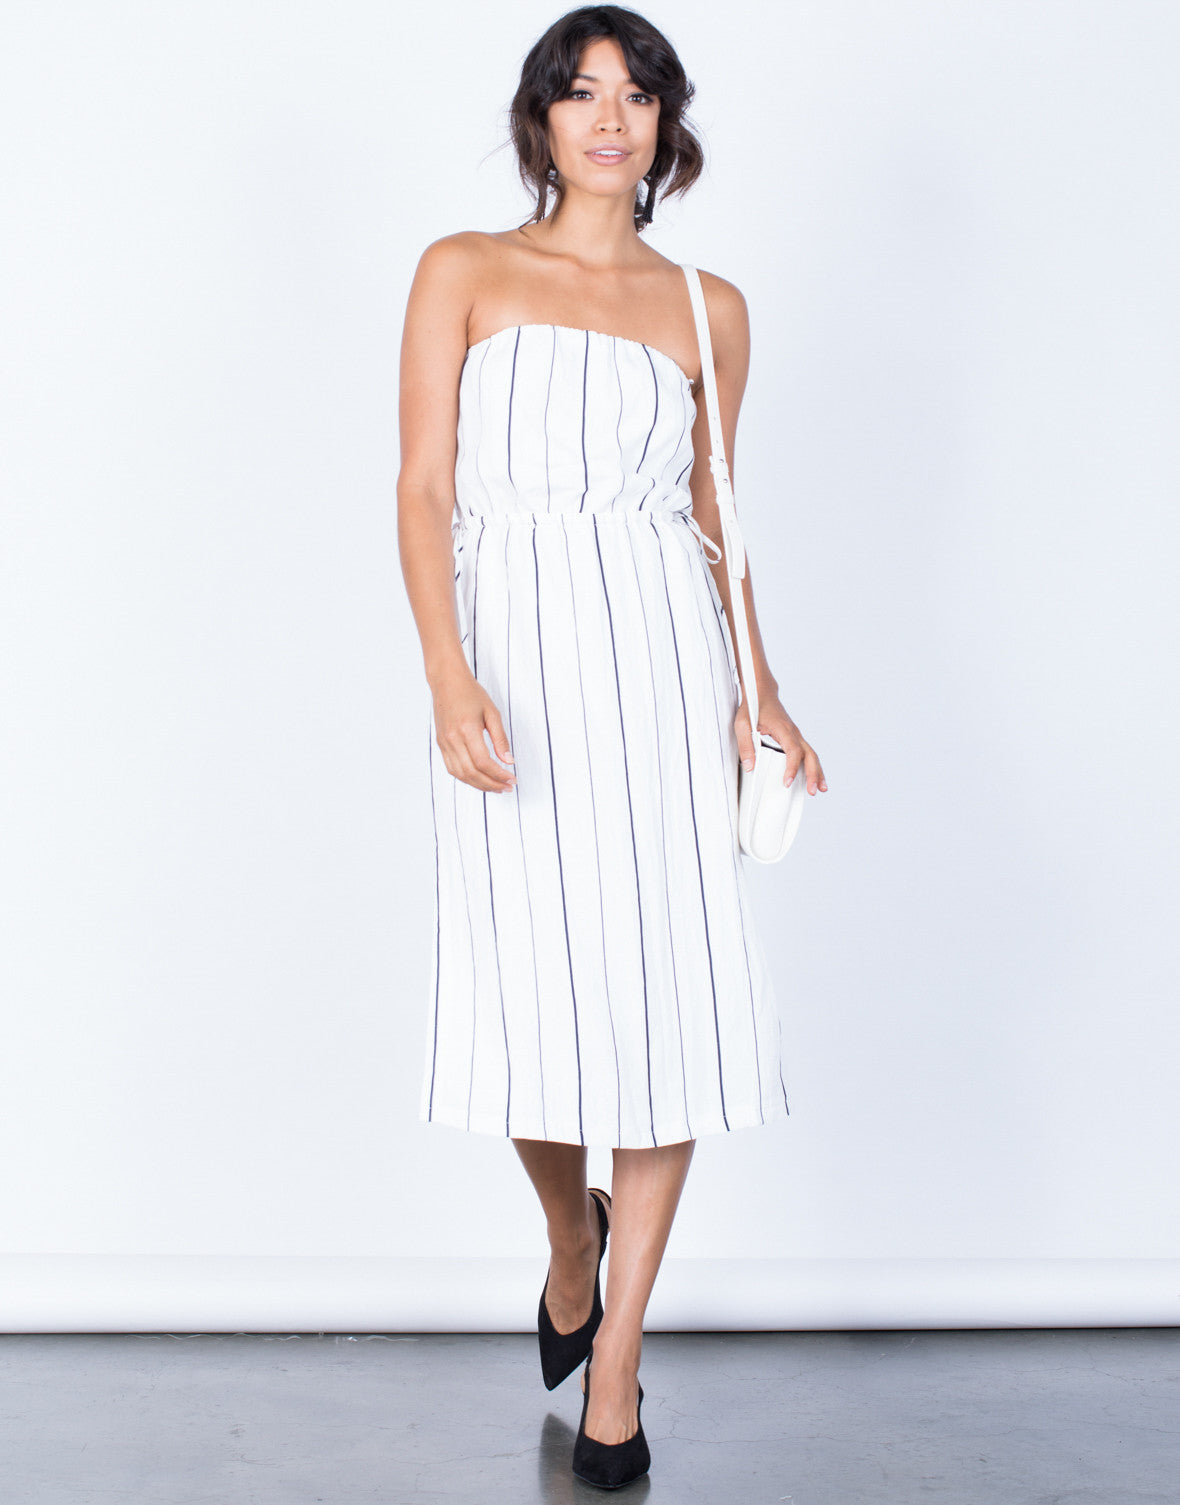 10 Kitchen And Home Decor Items Every 20 Something Needs: Clean Lines Striped Dress